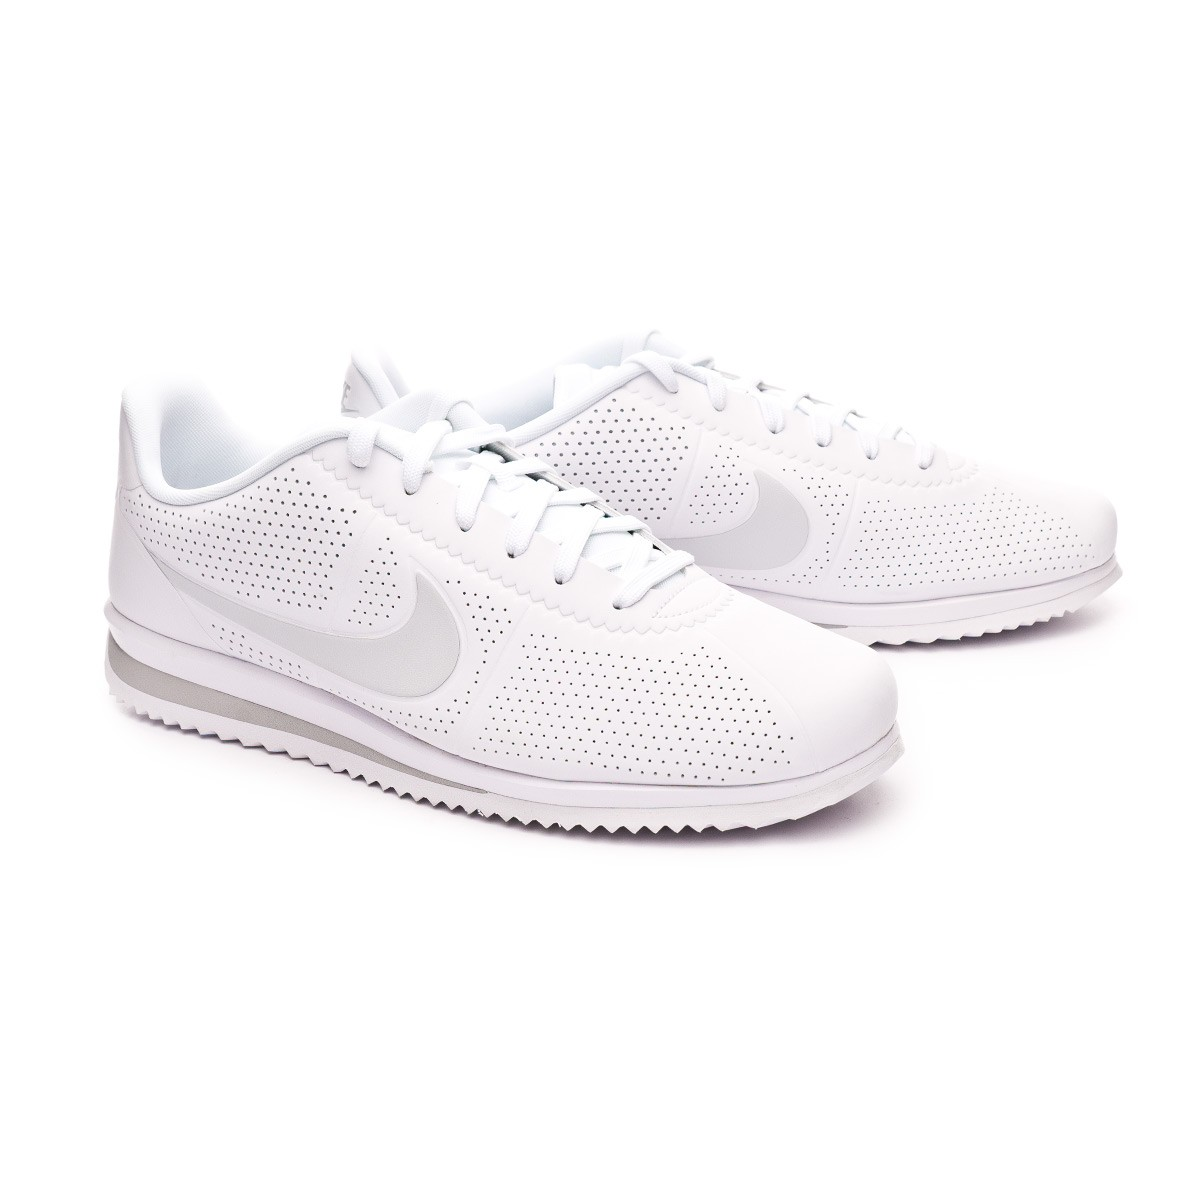 official photos c49ea 3fee2 Zapatilla Cortez Ultra Moire 2019 White-Pure platinum